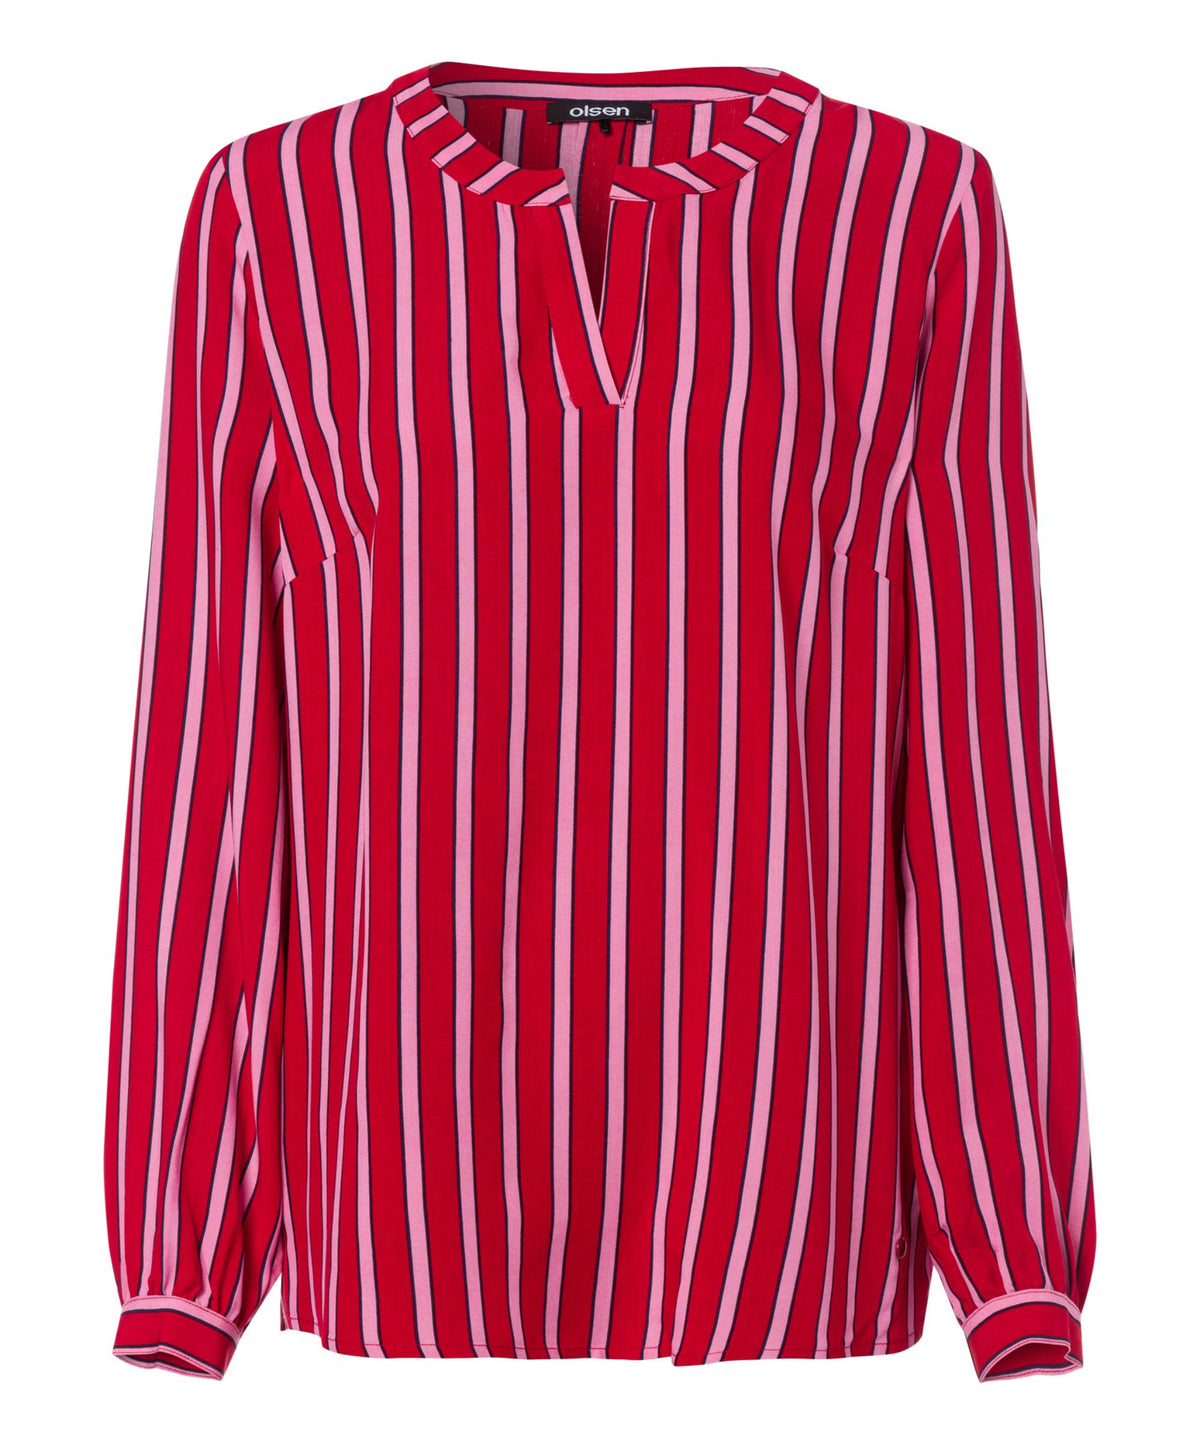 Vertical Stripe Blouse